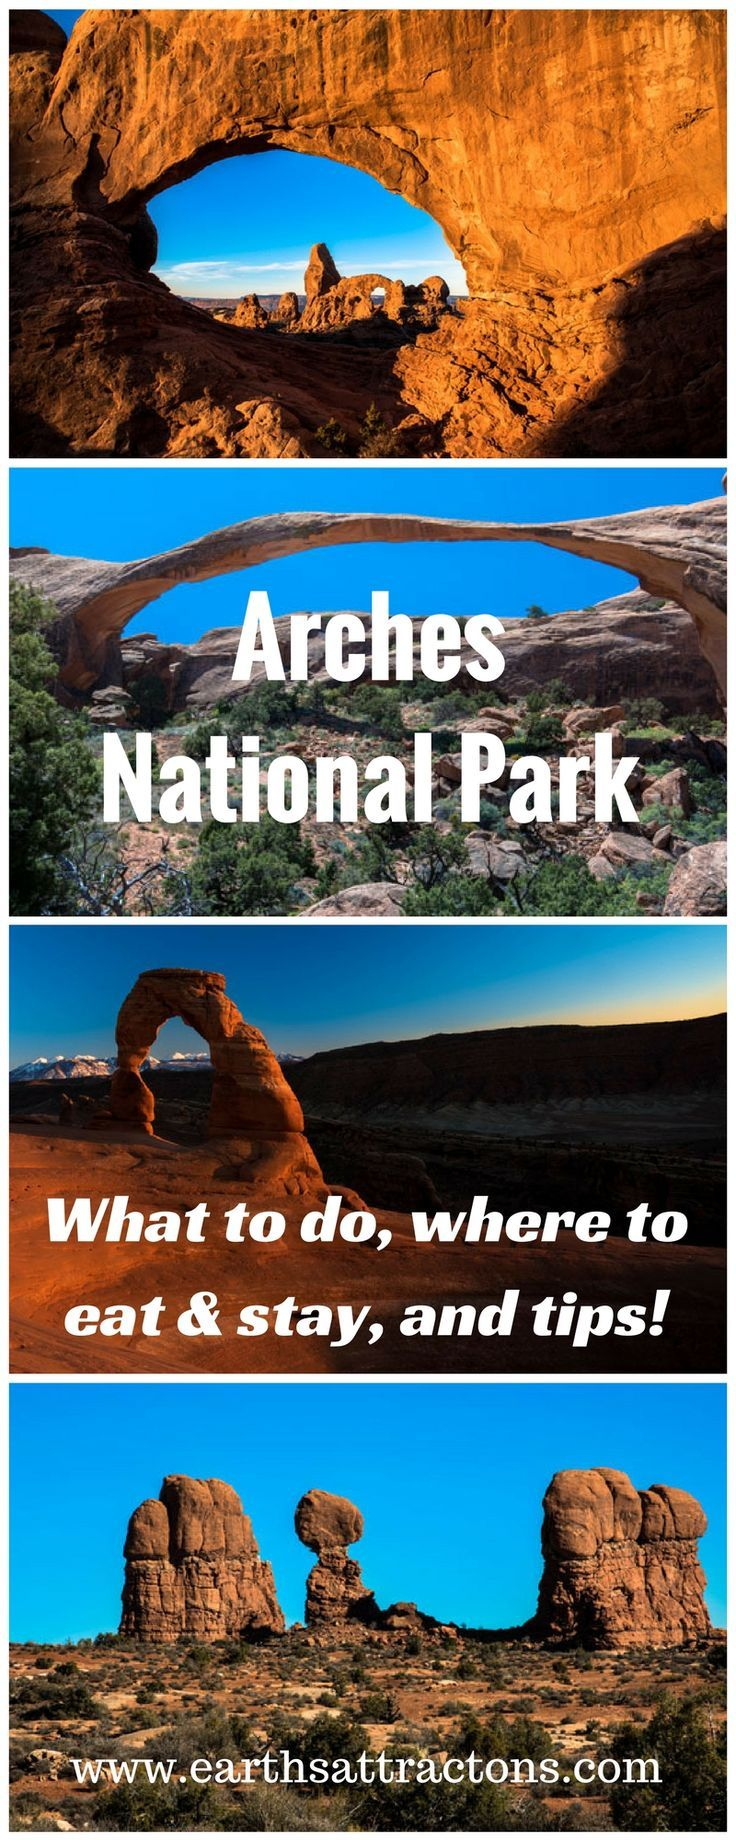 A complete travel guide to Arches National Park (USA) with all you need to know: what to see, where to stay, where to eat, and tips. Travel in the USA.